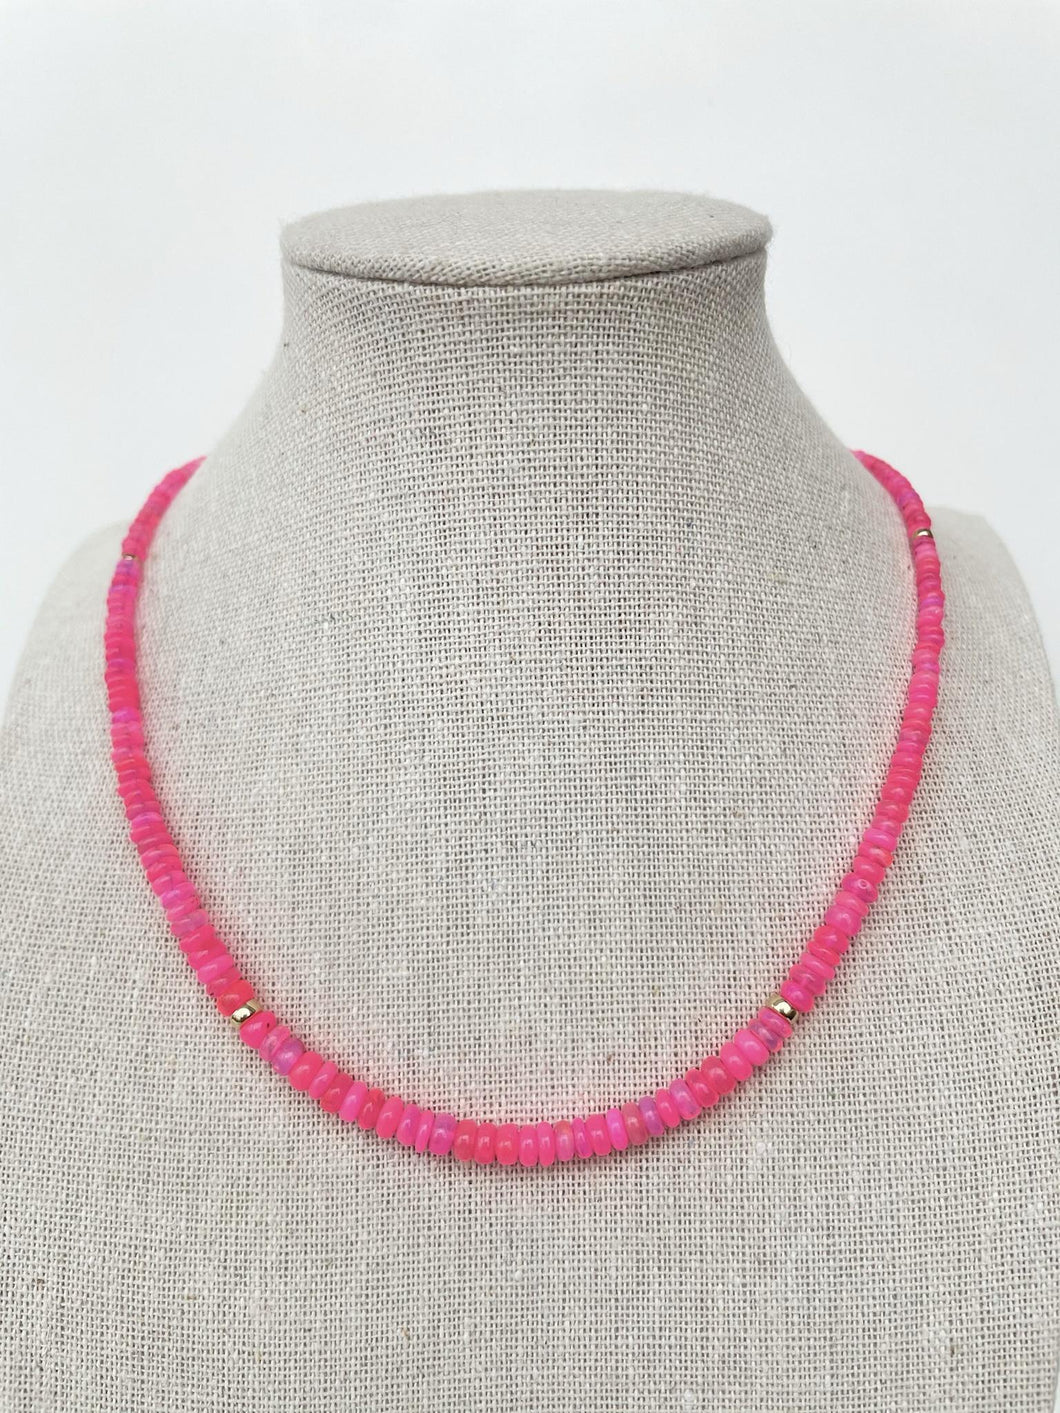 Ethiopian Pink Opal Necklace